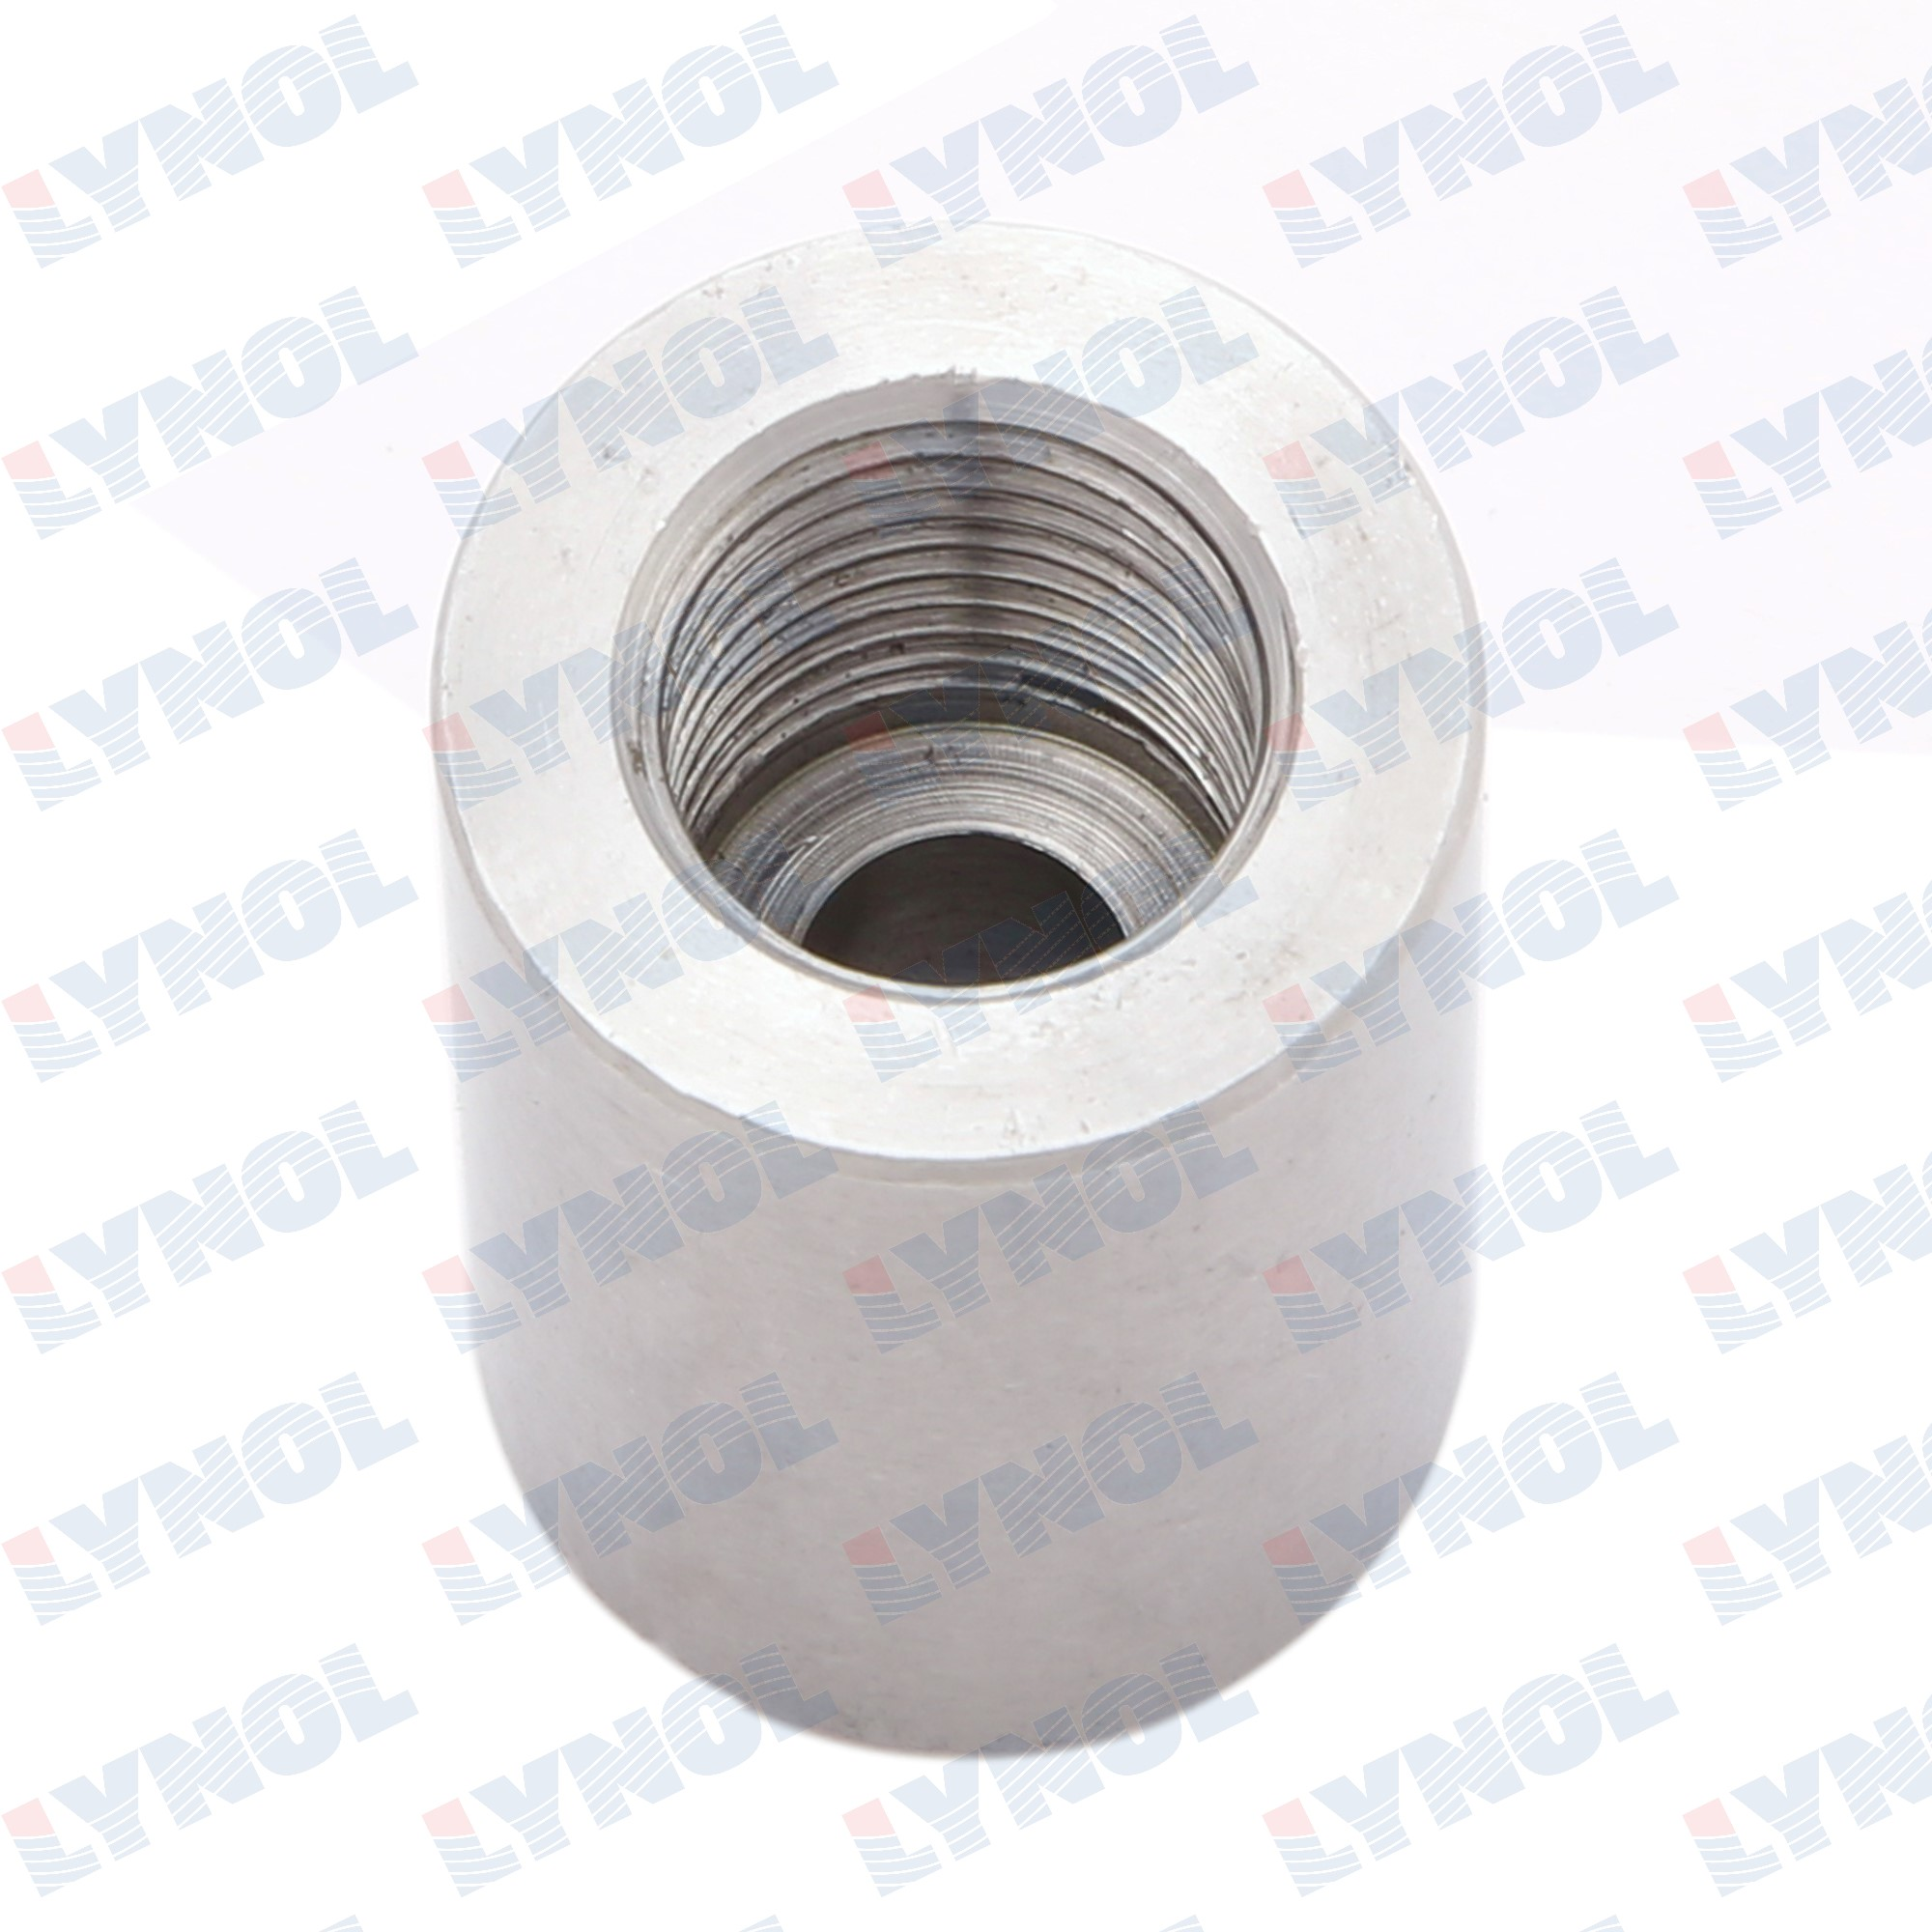 4504003 - SENSOR BUNG - M14*1.5 - Flat Flare Overall Length 1 3/10'', Outside Diameter 7/8''